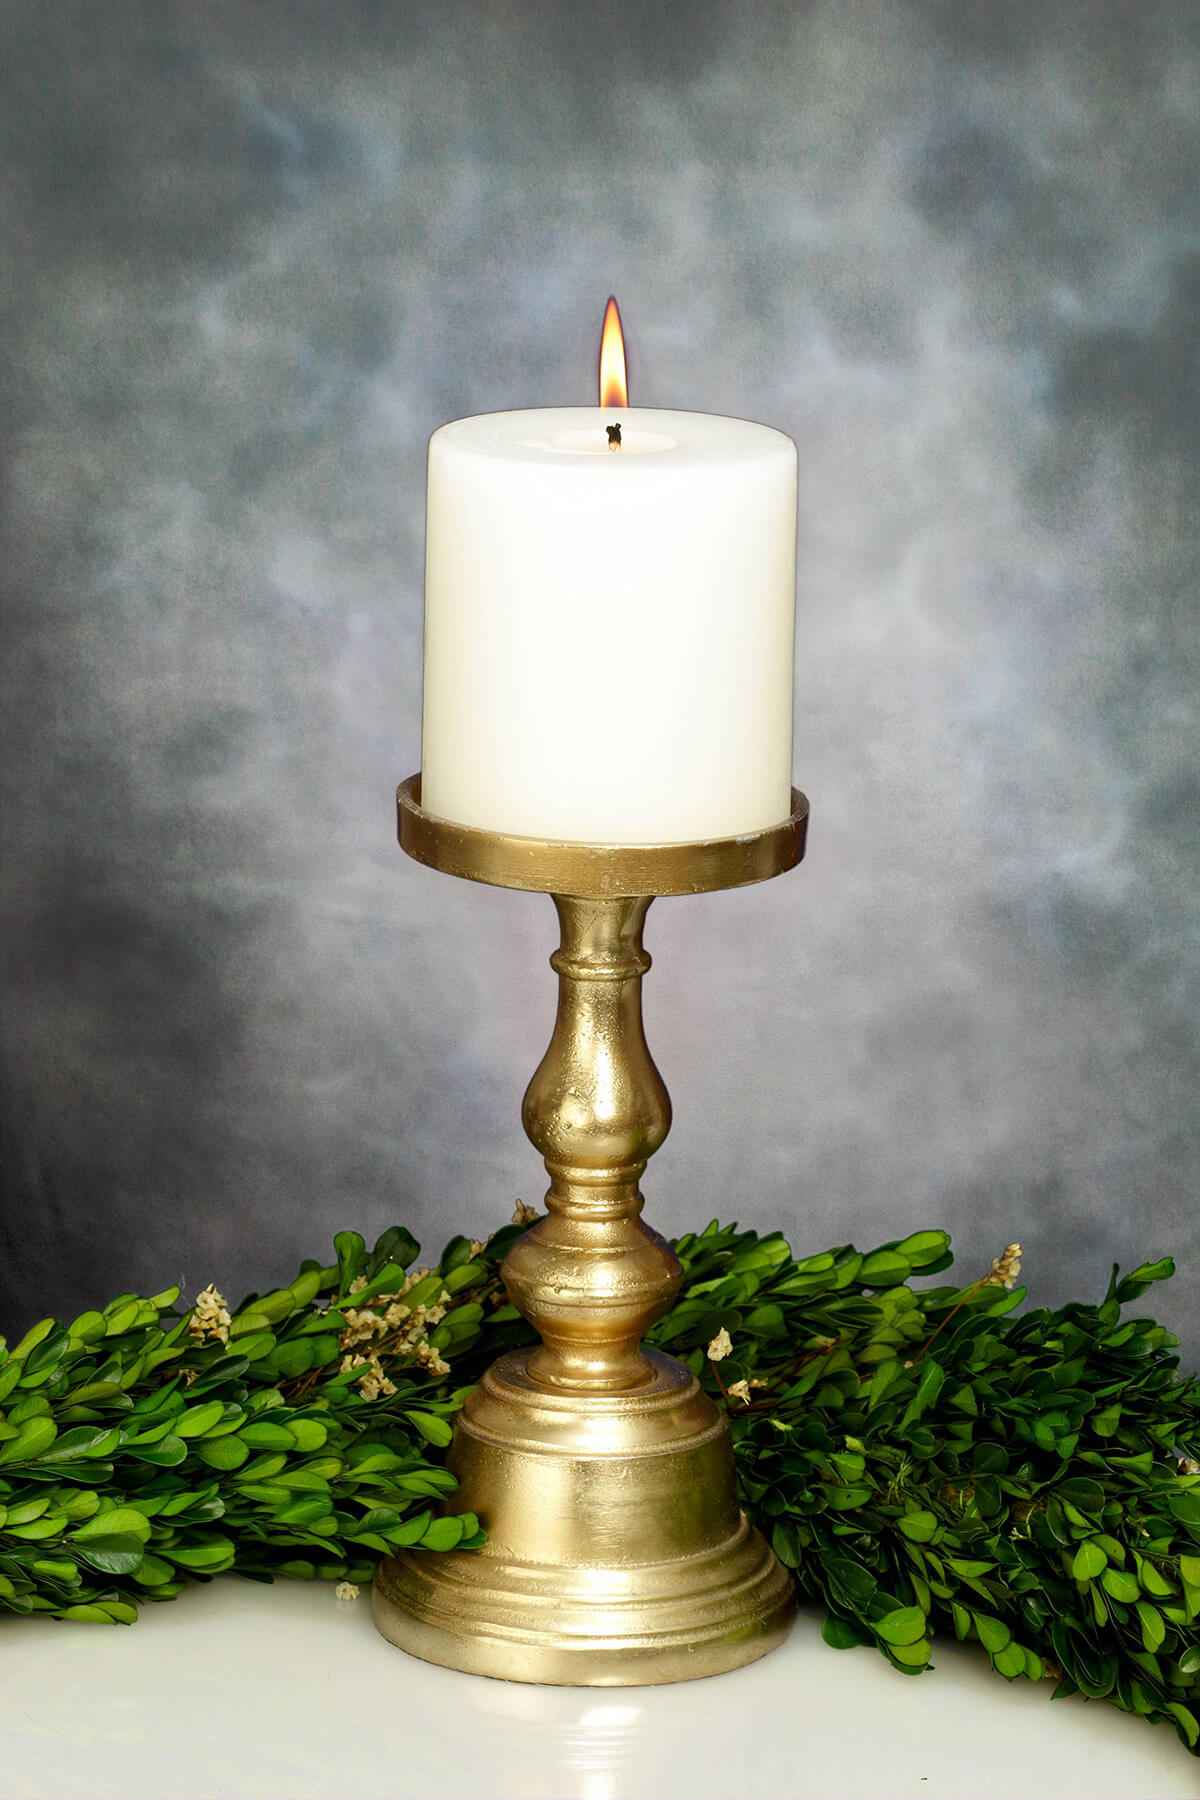 Athena Gold Candleholder 95in Pillar Candle Holders